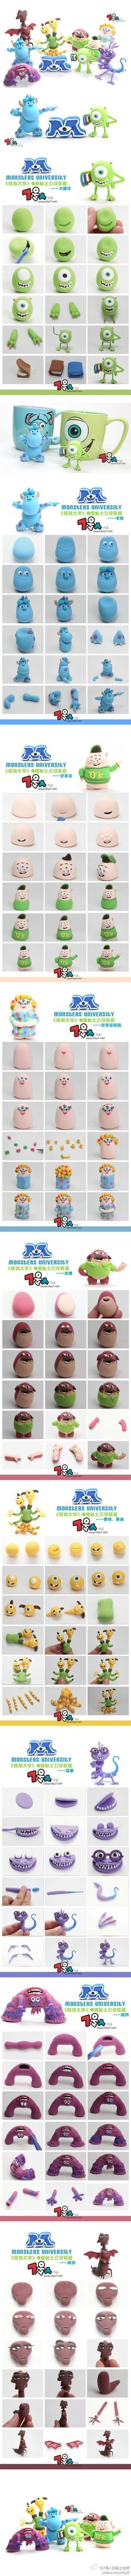 Monsters university - For all your cake decorating supplies, please visit craftcompany.co.uk